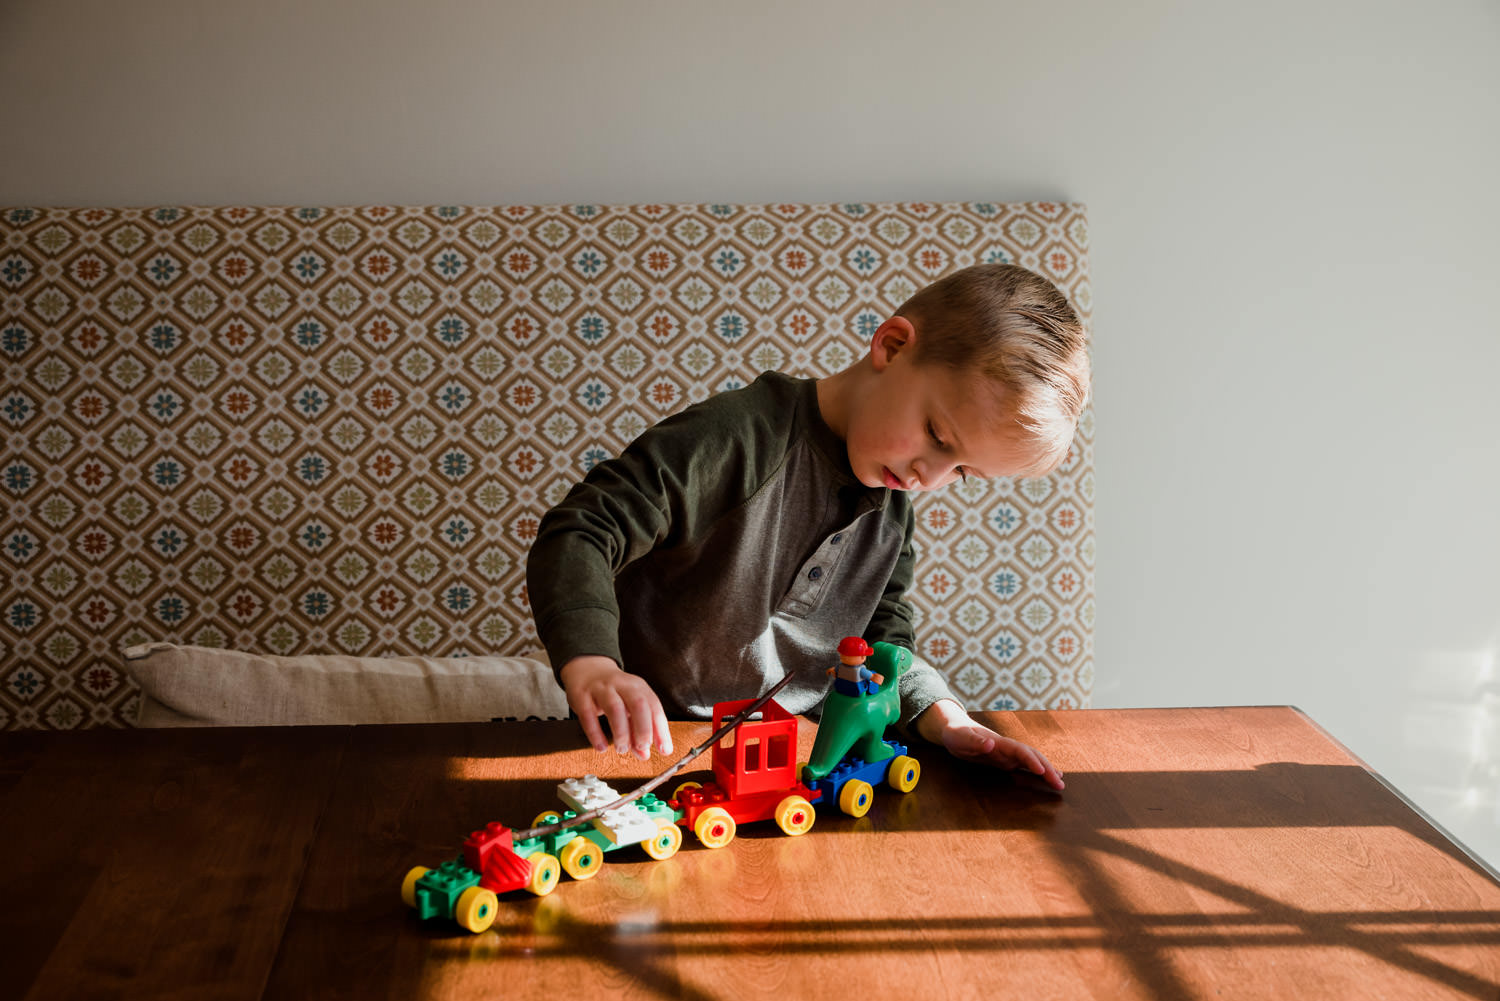 A boy plays with a lego train at the table.